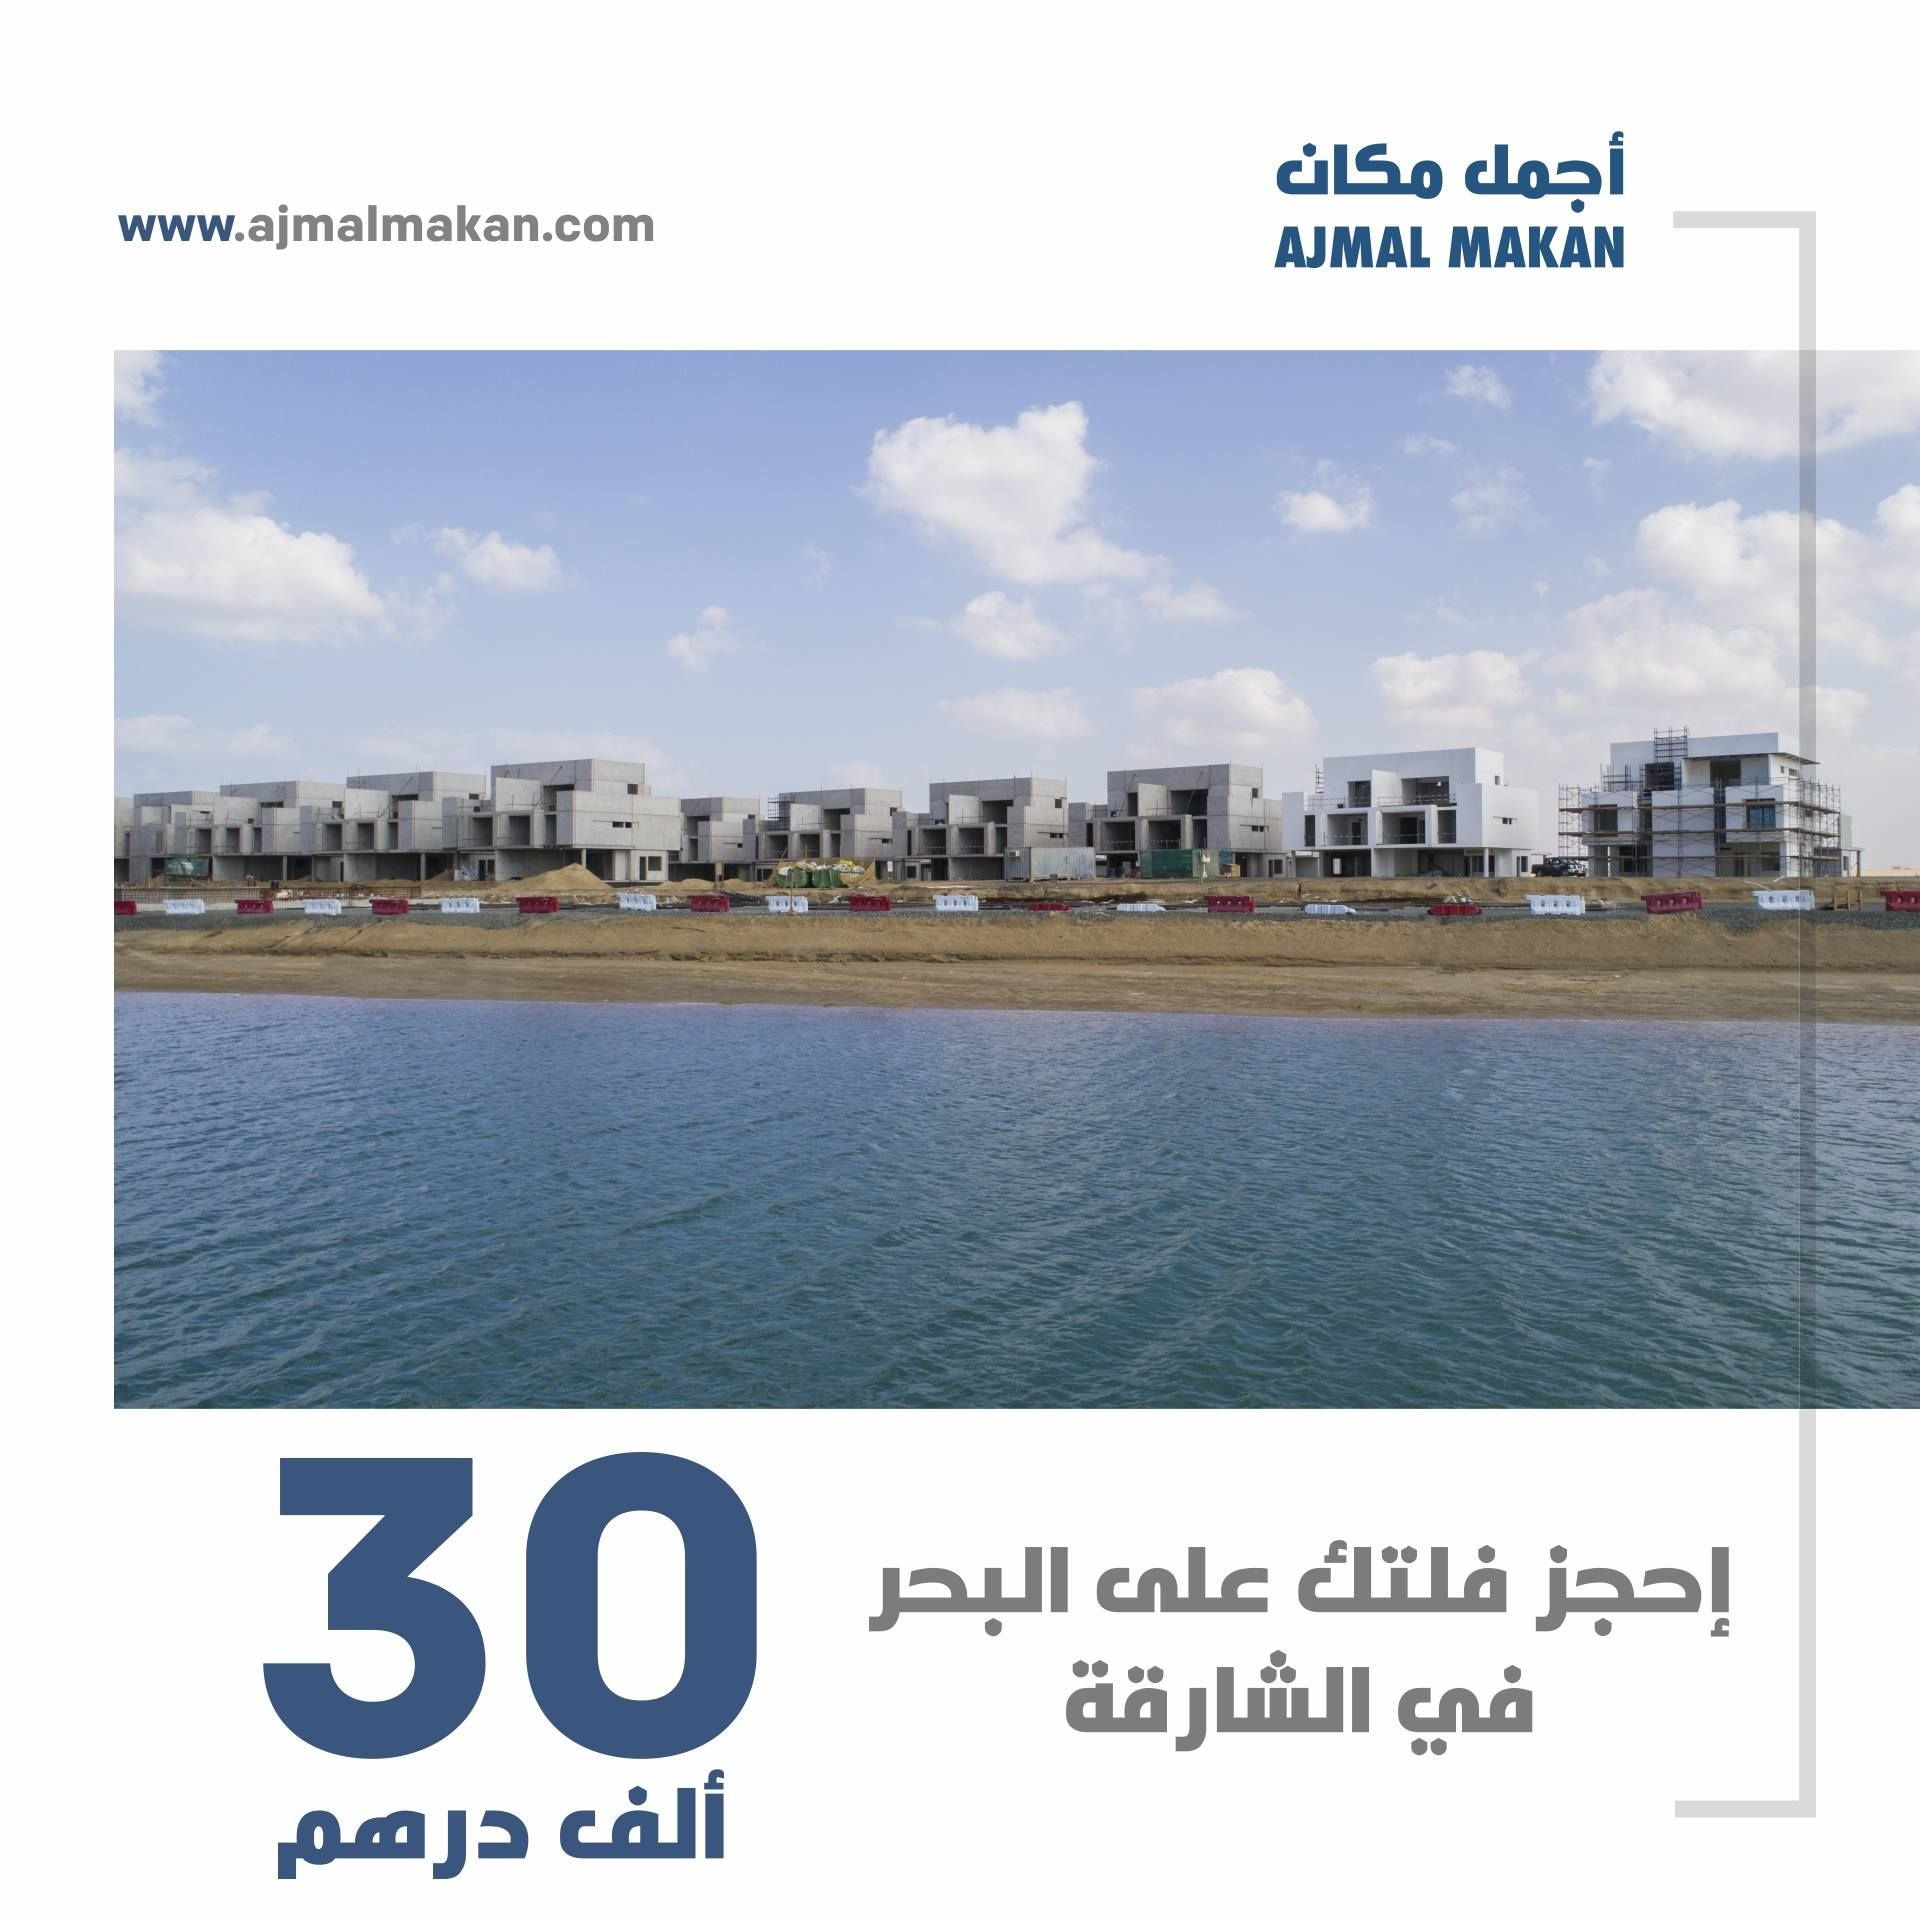 Pin By Sharjah Waterfront City On Ajmal Makan أجمل مكان Outdoor Water Beach